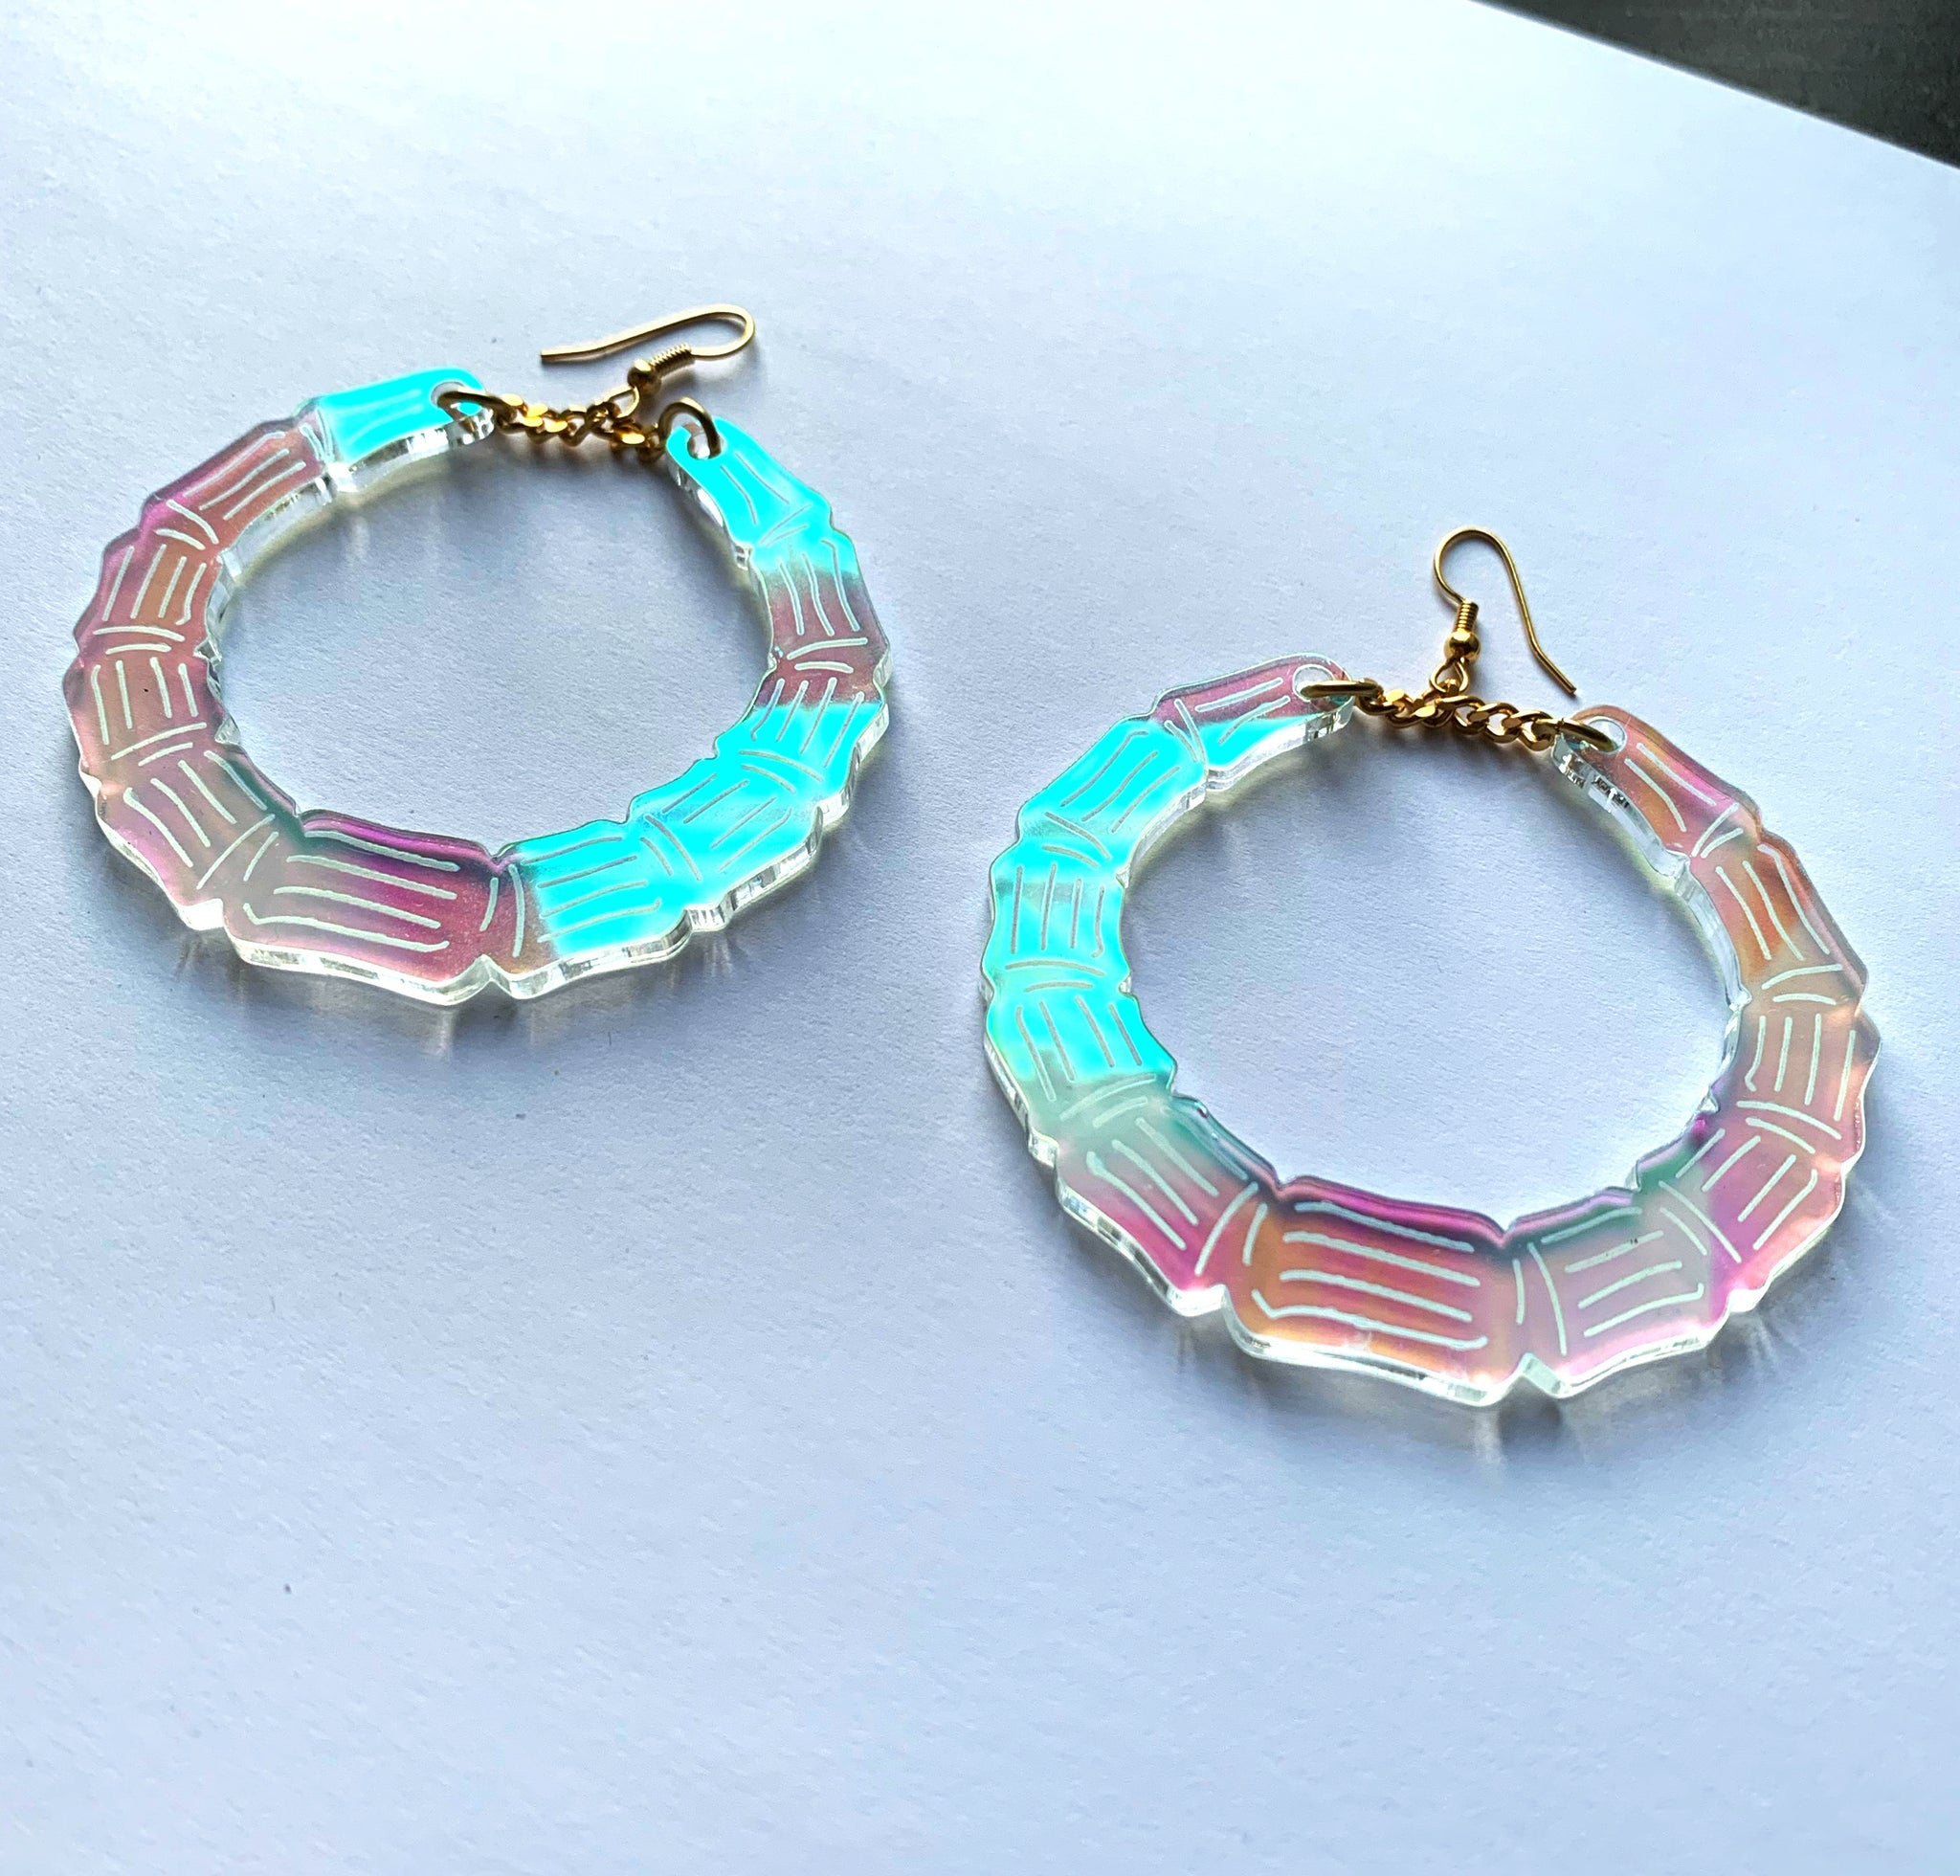 Bamboo Bangas Iridescent Acrylic Earrings